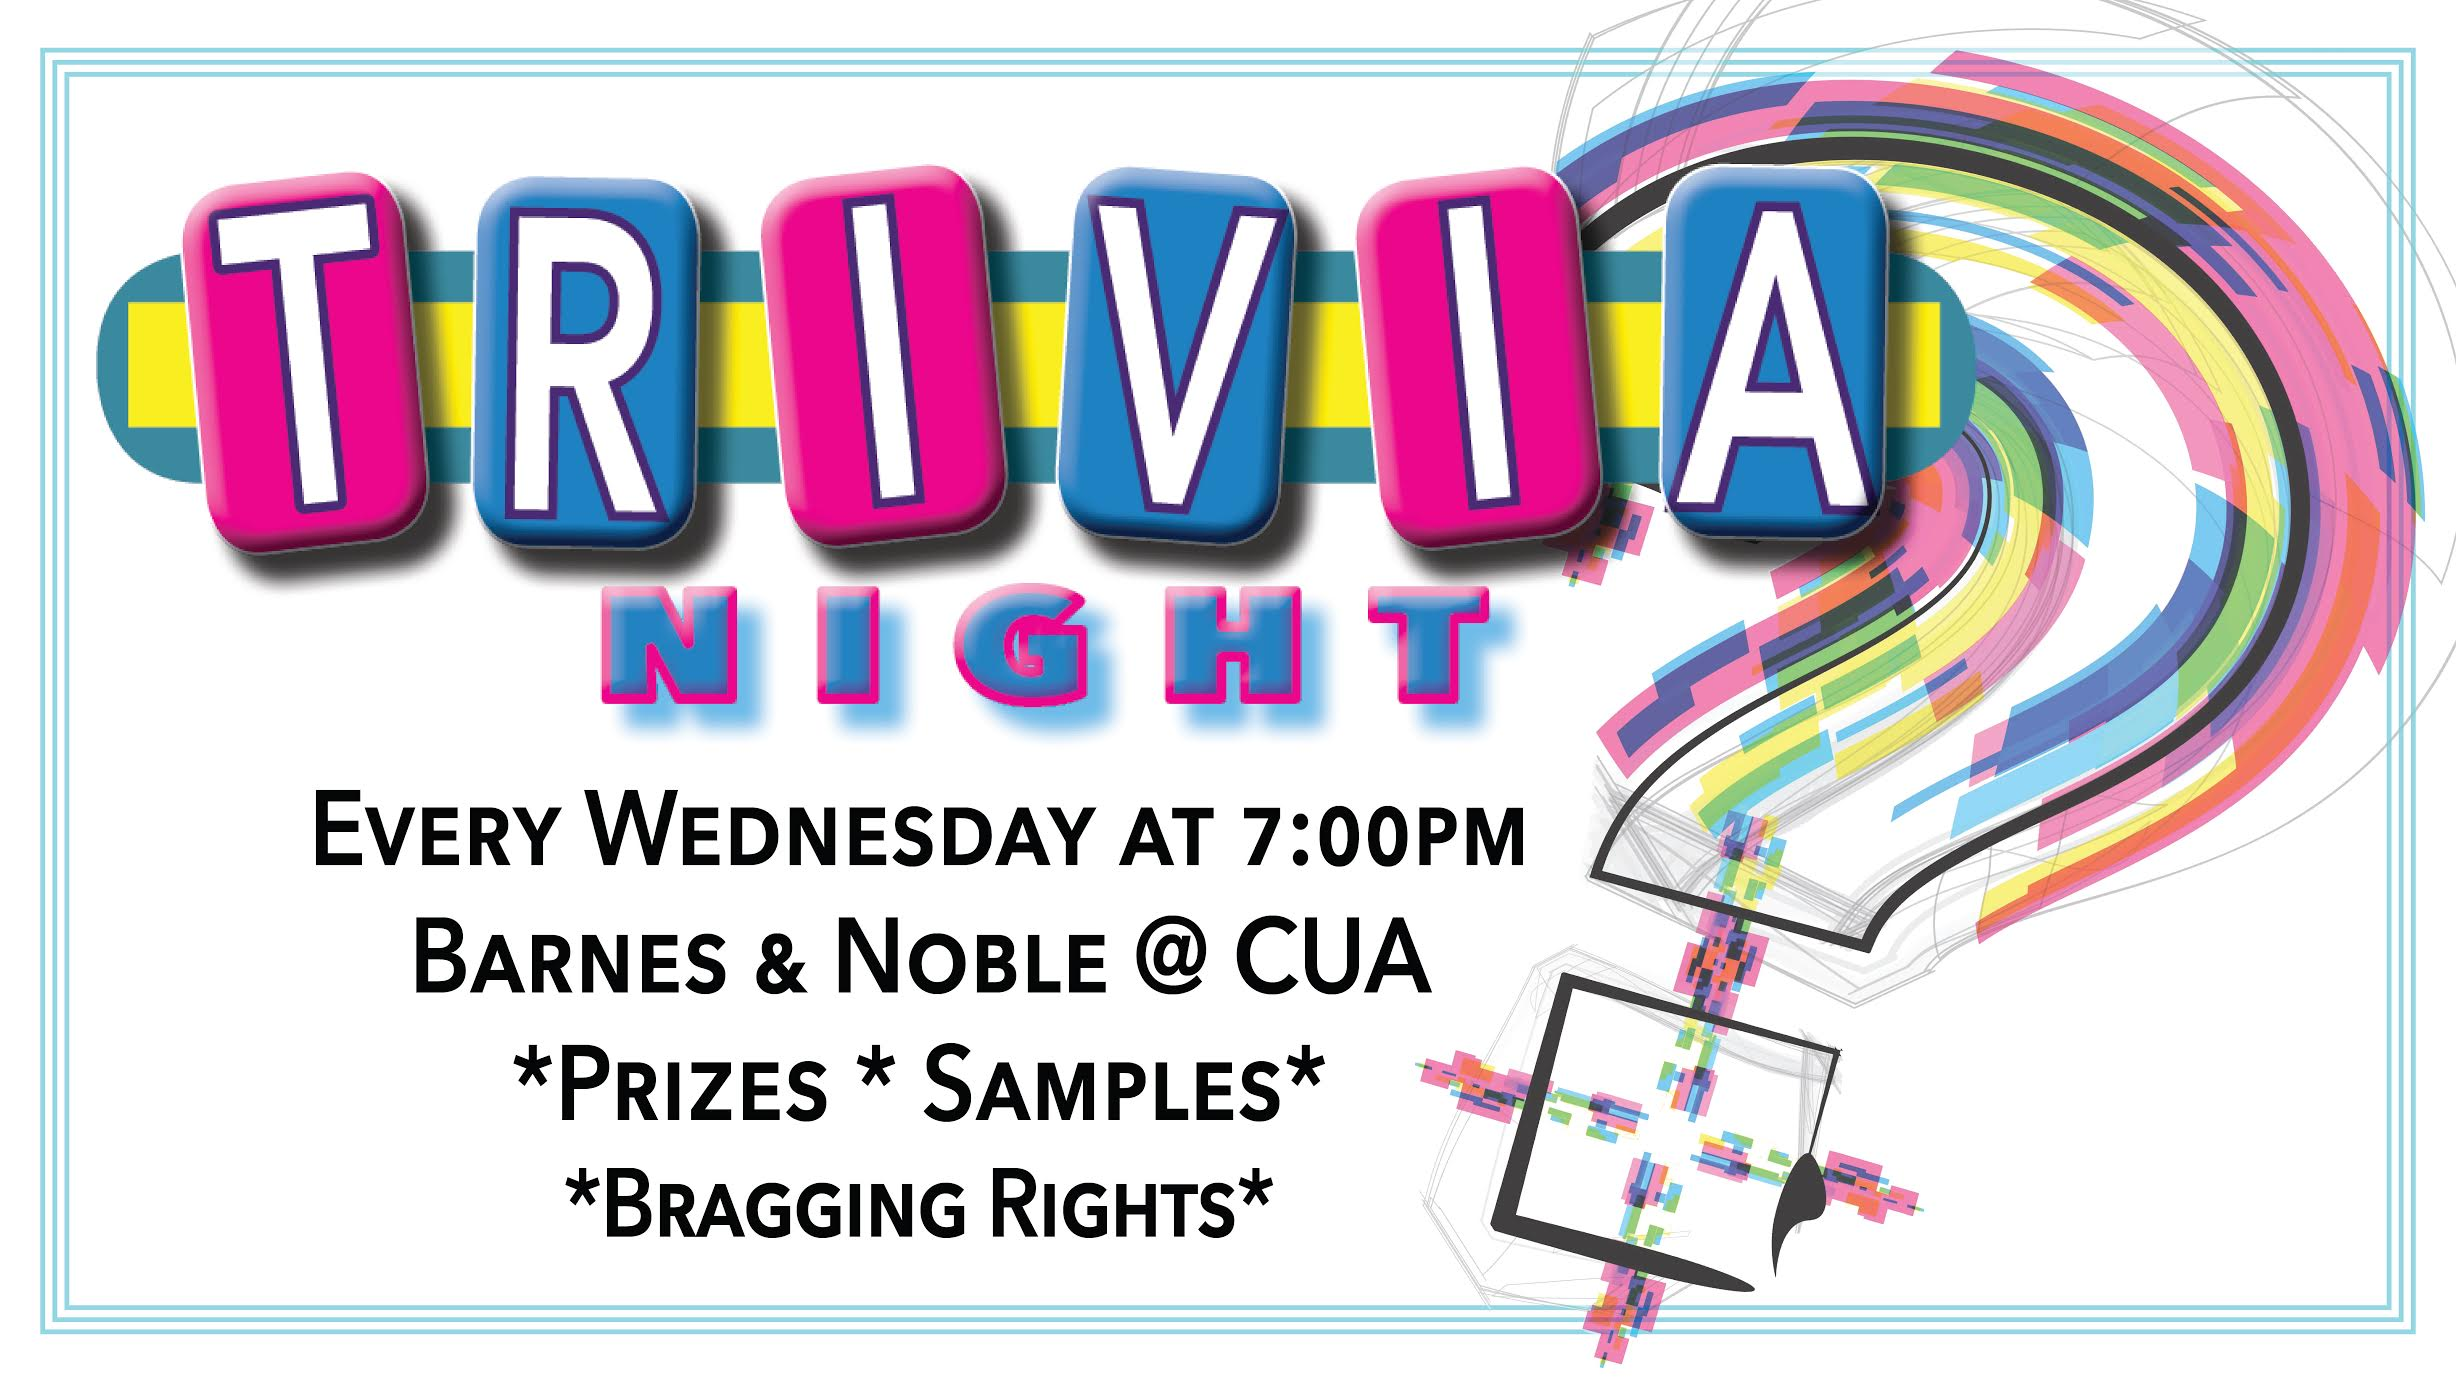 Barnes & Noble: Trivia Night - Wednesdays @ 7pm